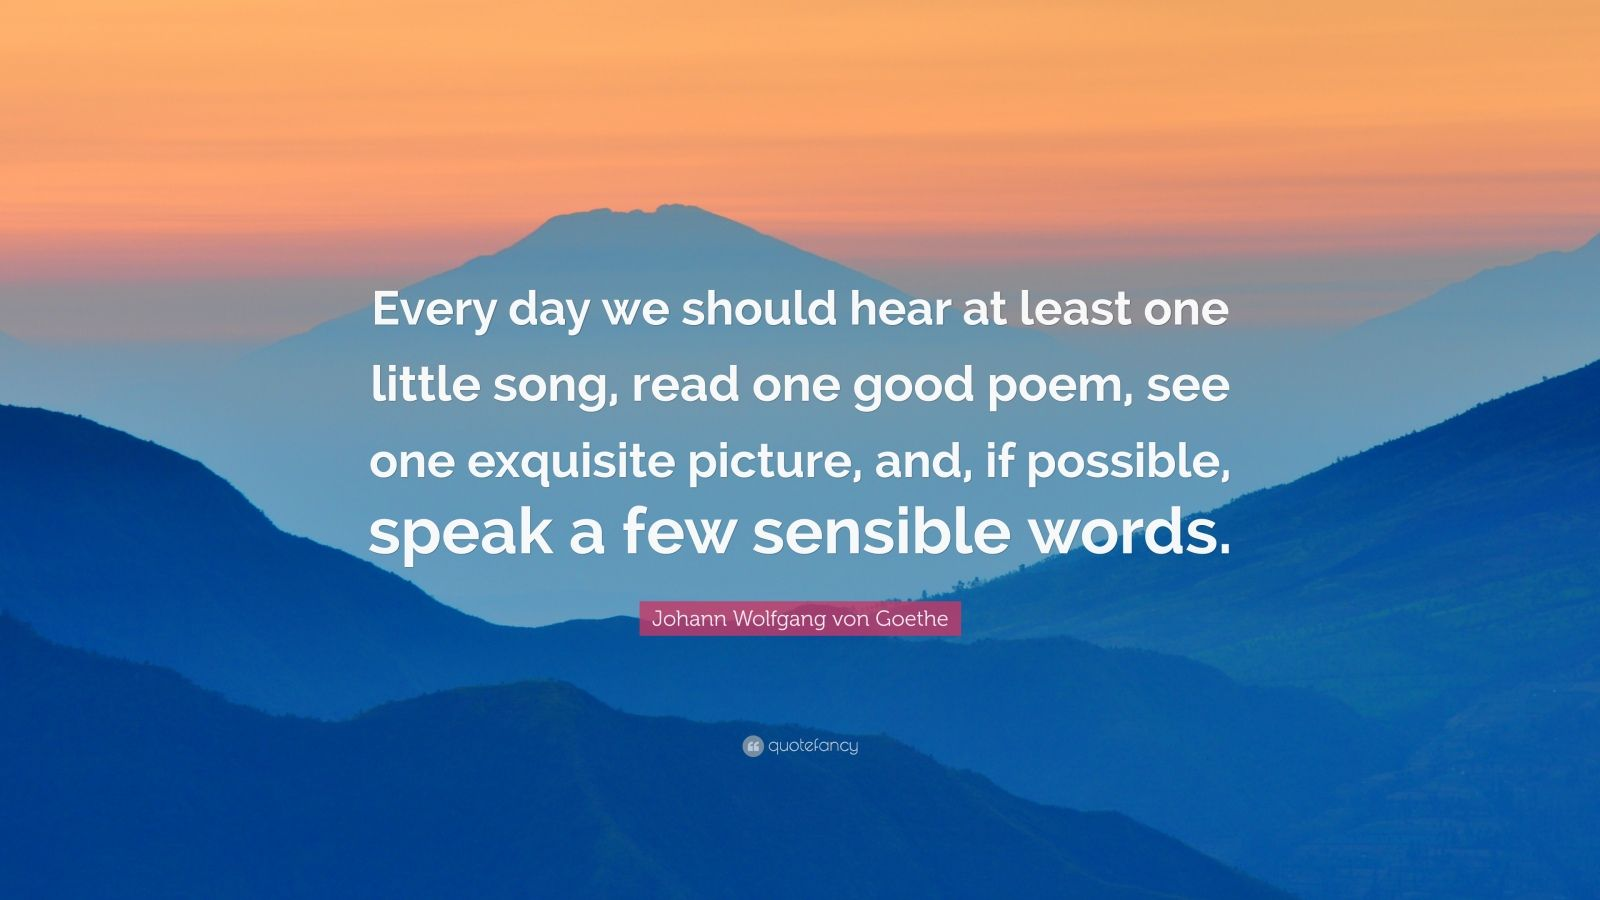 """Johann Wolfgang von Goethe Quote: """"Every day we should hear at least one little song, read one good poem, see one exquisite picture, and, if possible, speak a few sensible words."""""""